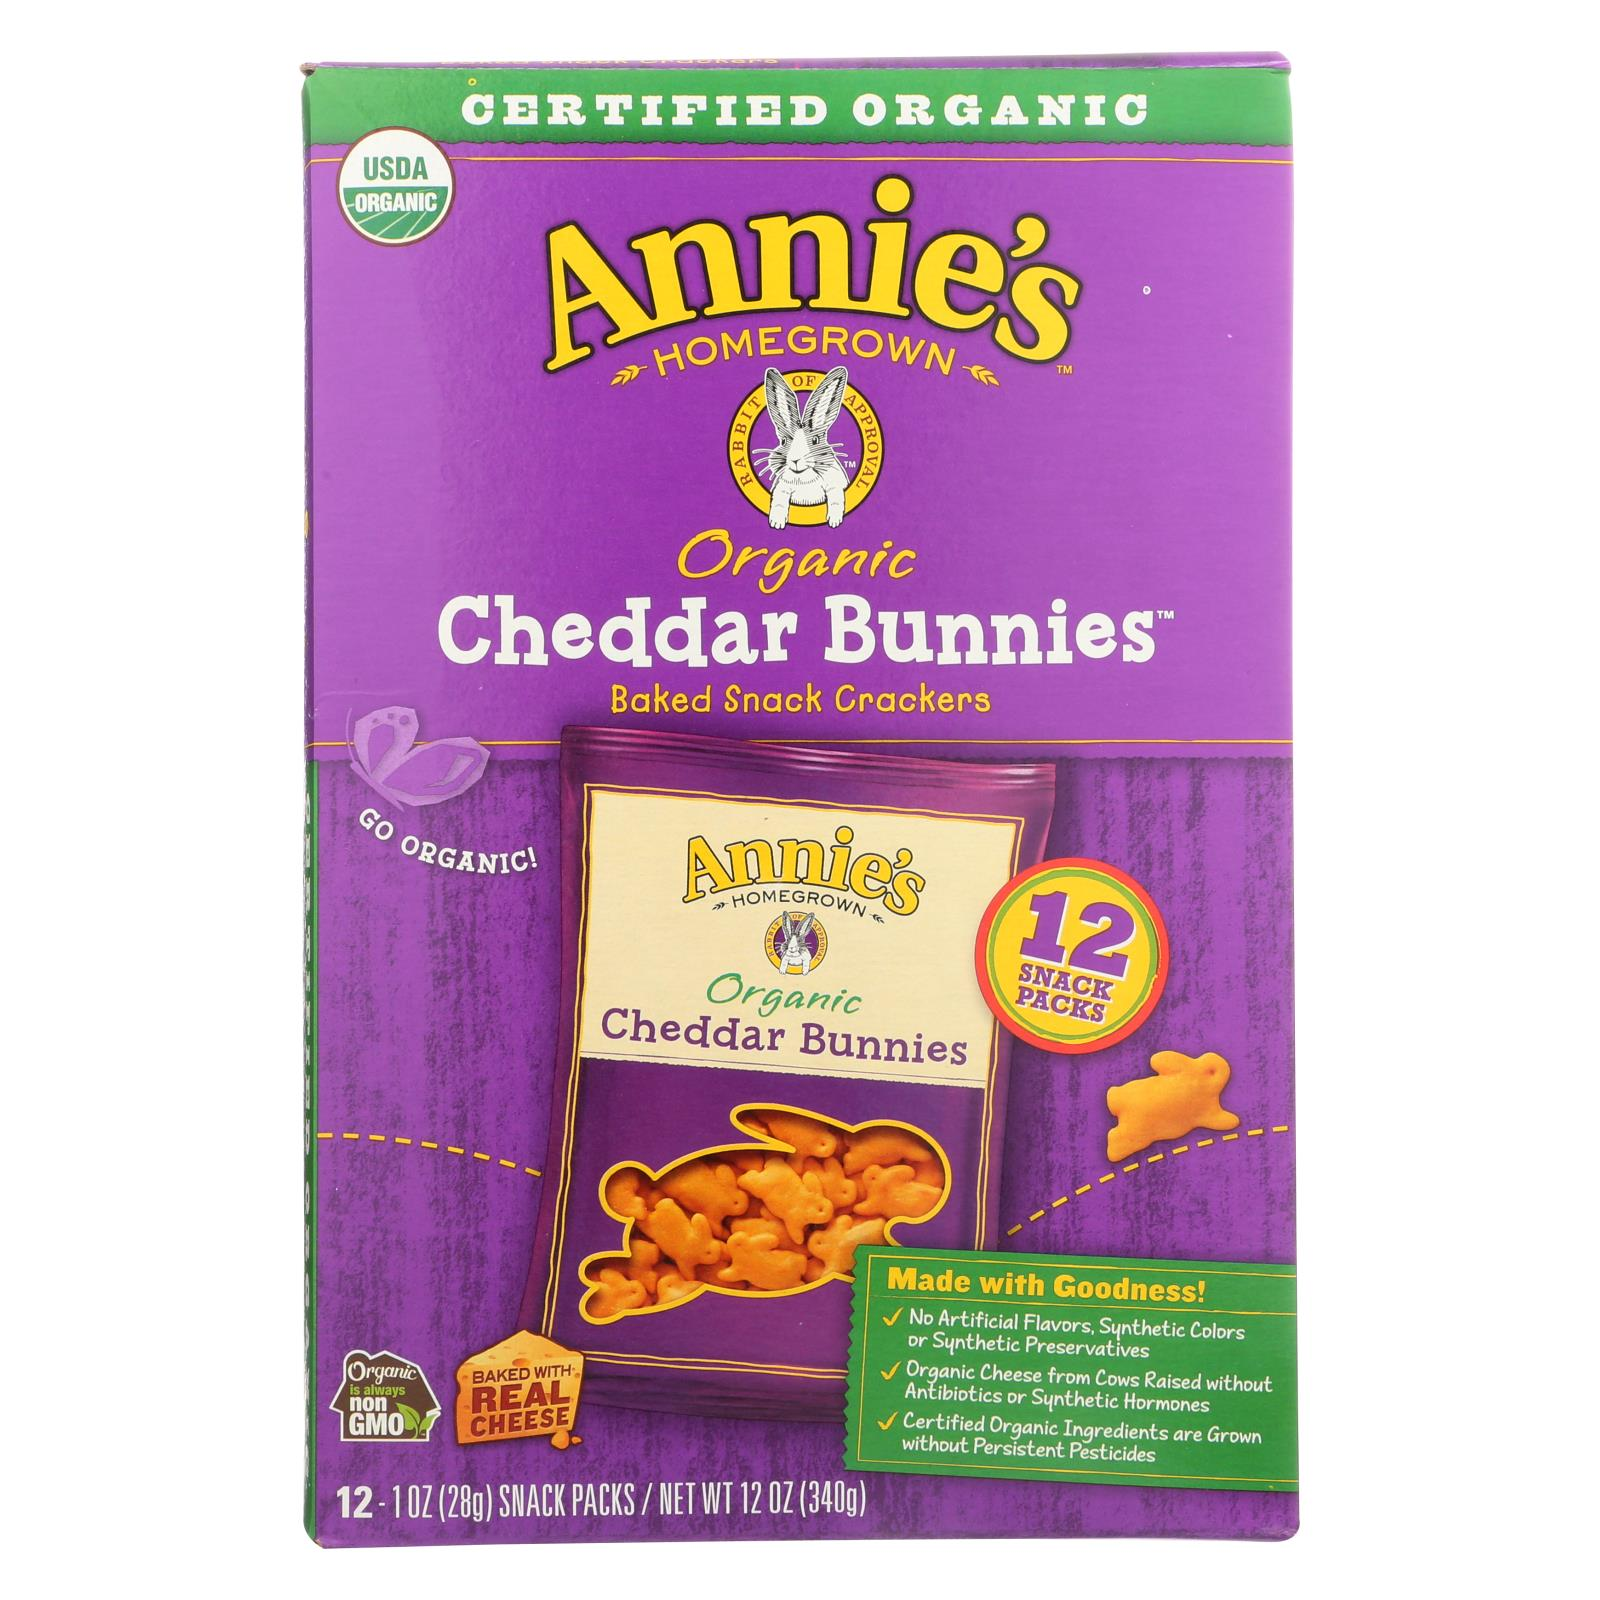 Annie's Homegrown Organic Bunny Cracker Snack Pack - Cheddar - Case Of 4 - 12-1 Oz - J. Rose Global